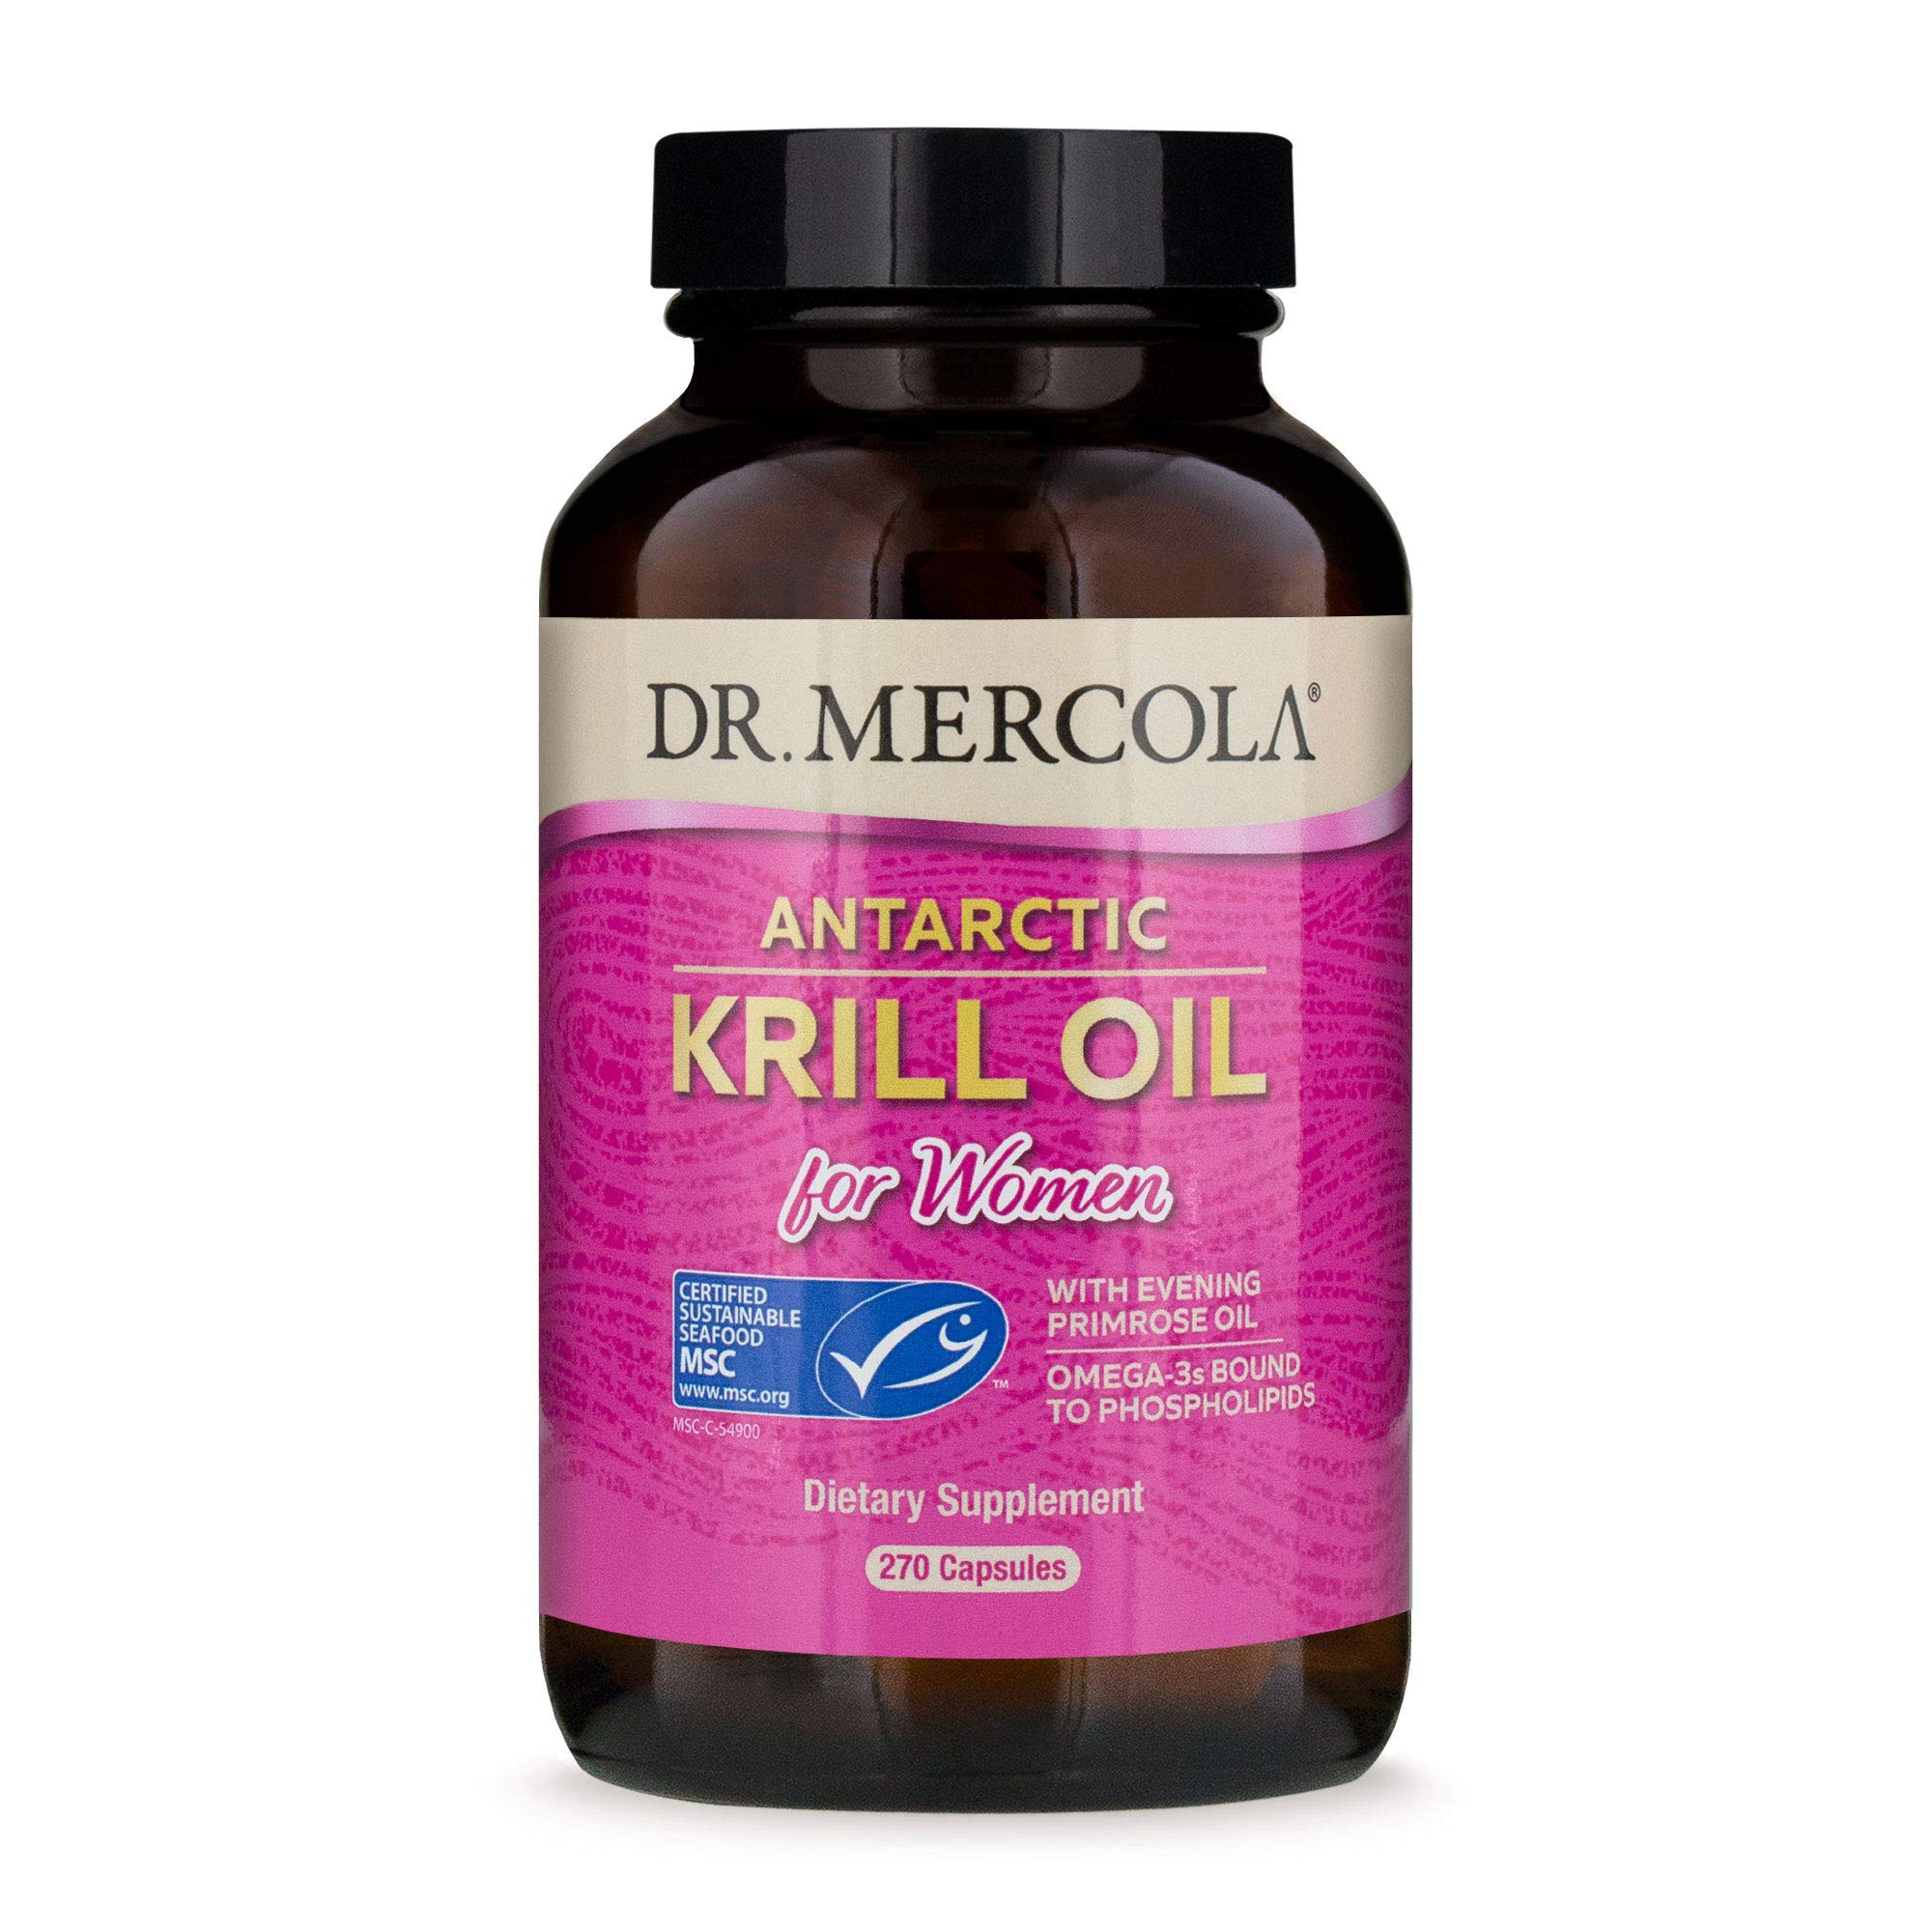 Dr. Mercola Antarctic Krill Oil for Women with Evening Primrose Oil, 90 Servings (270 Capsules),Source of Omega 3 Fatty Acids, MSC Certified, Non GMO, Soy-Free, Gluten Free